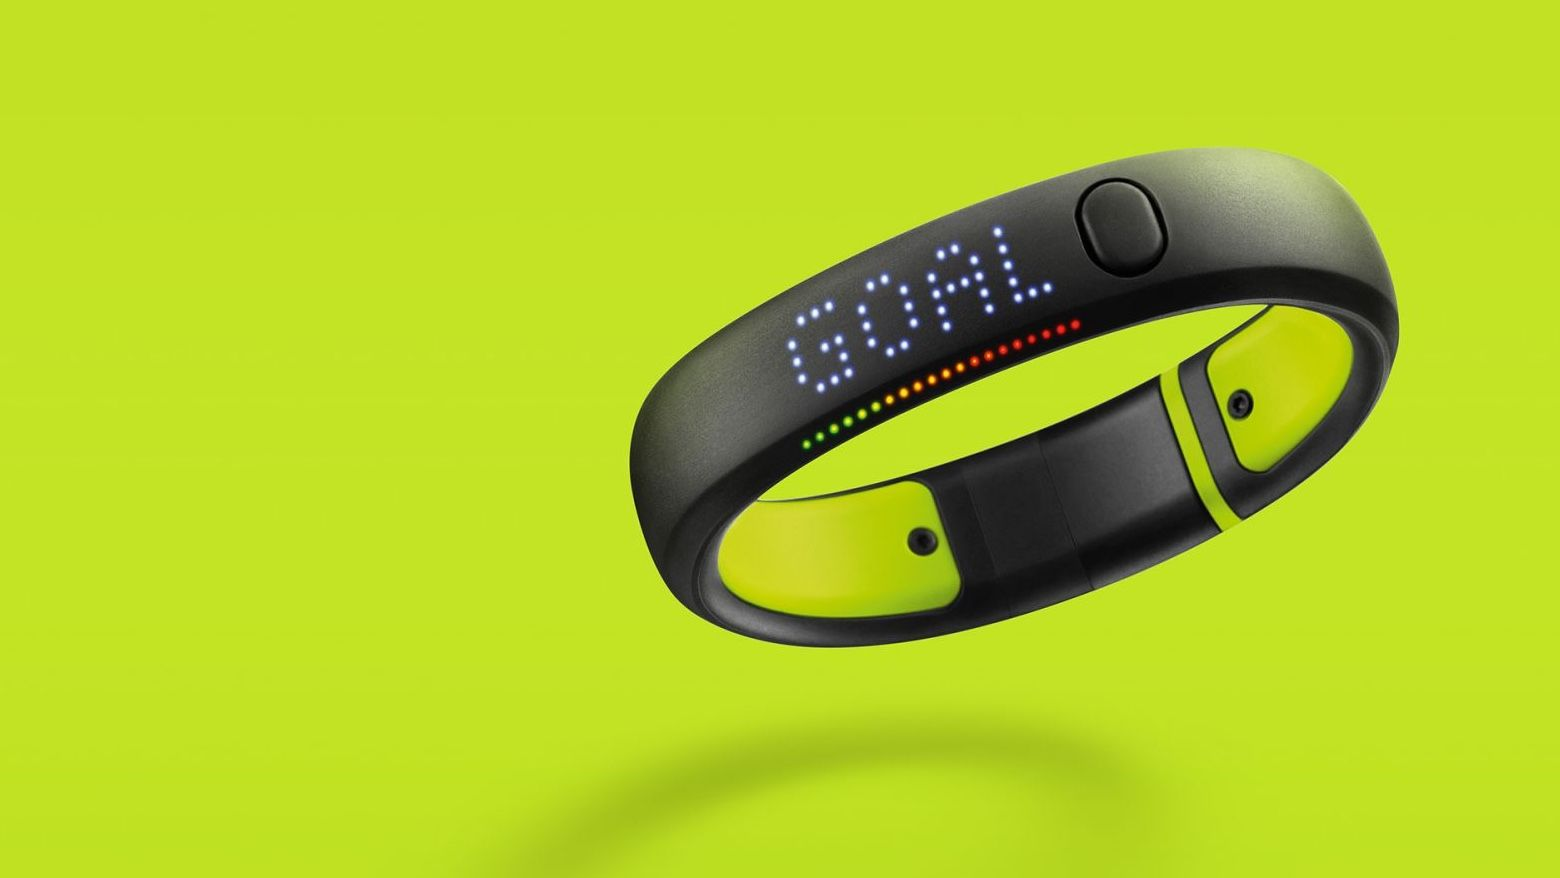 Alphabetical order Soon subtraction  Nike FuelBand: The rise and fall of the wearable that started it all    Fitness wearables, Nike fuel band, Fitness software